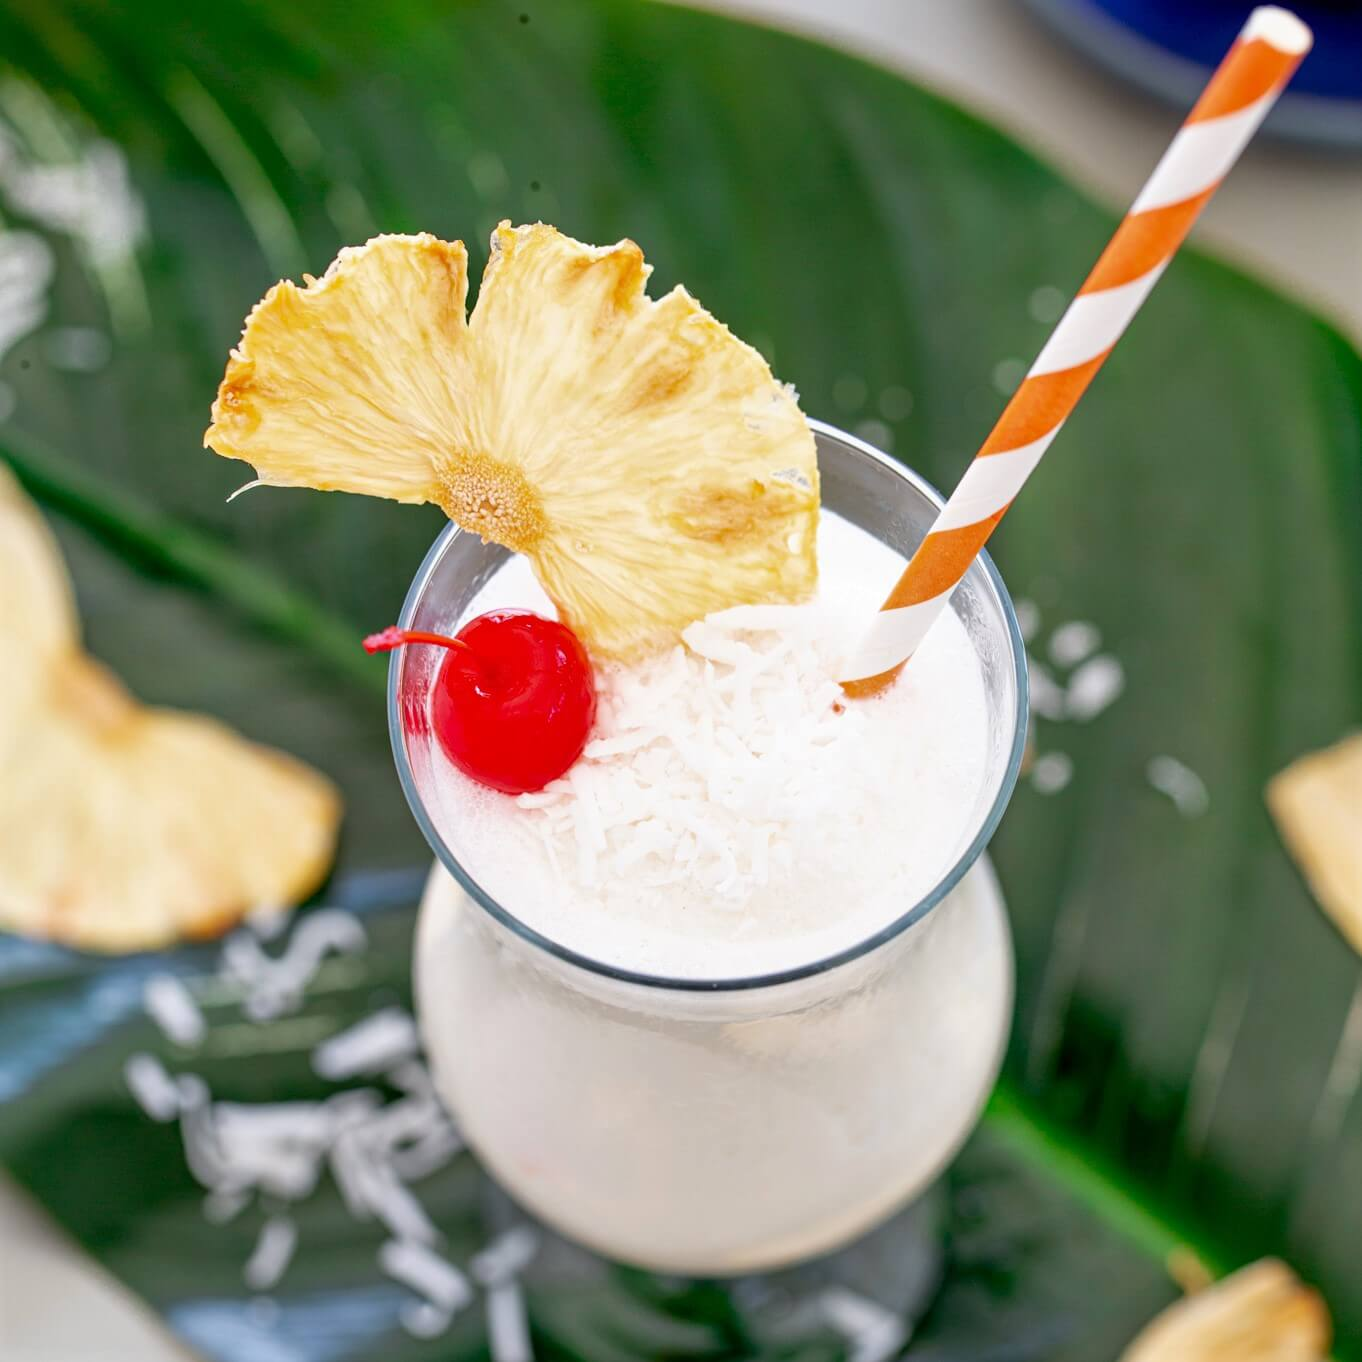 Top view of a Pina Colada garnished with a wedge of pineapple, a cherry, and shredded coconut.